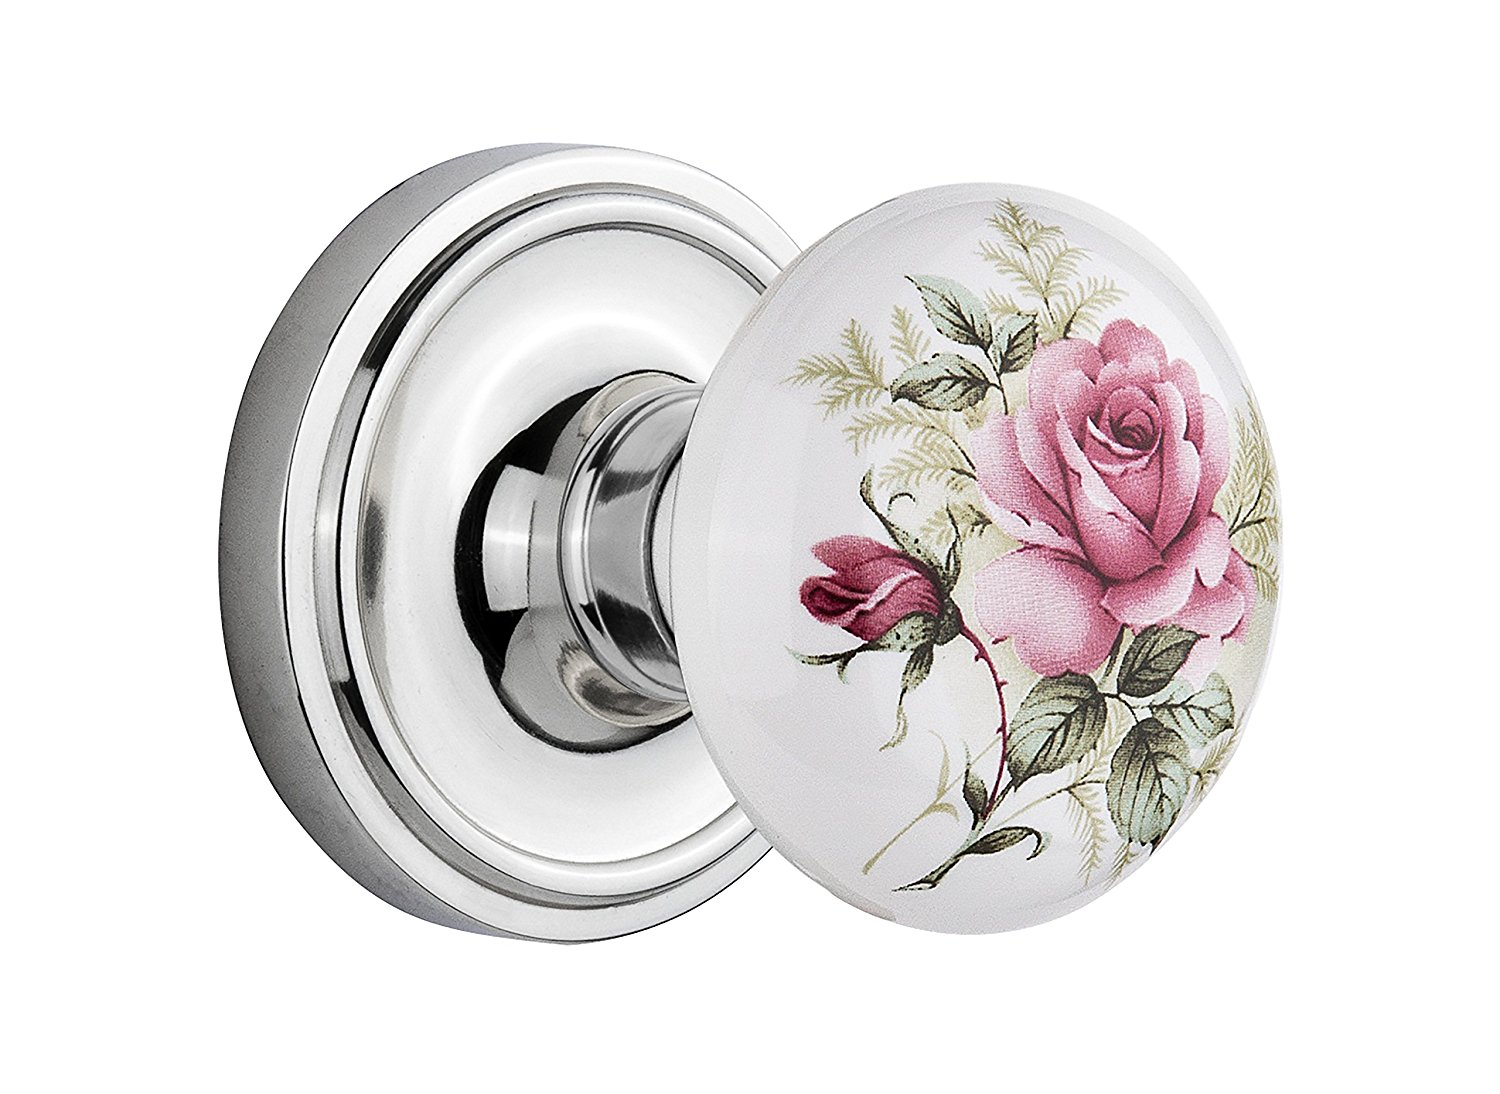 Nostalgic Warehouse Classic Rosette with Rose Porcelain Door Knob, Double Dummy, Bright Chrome